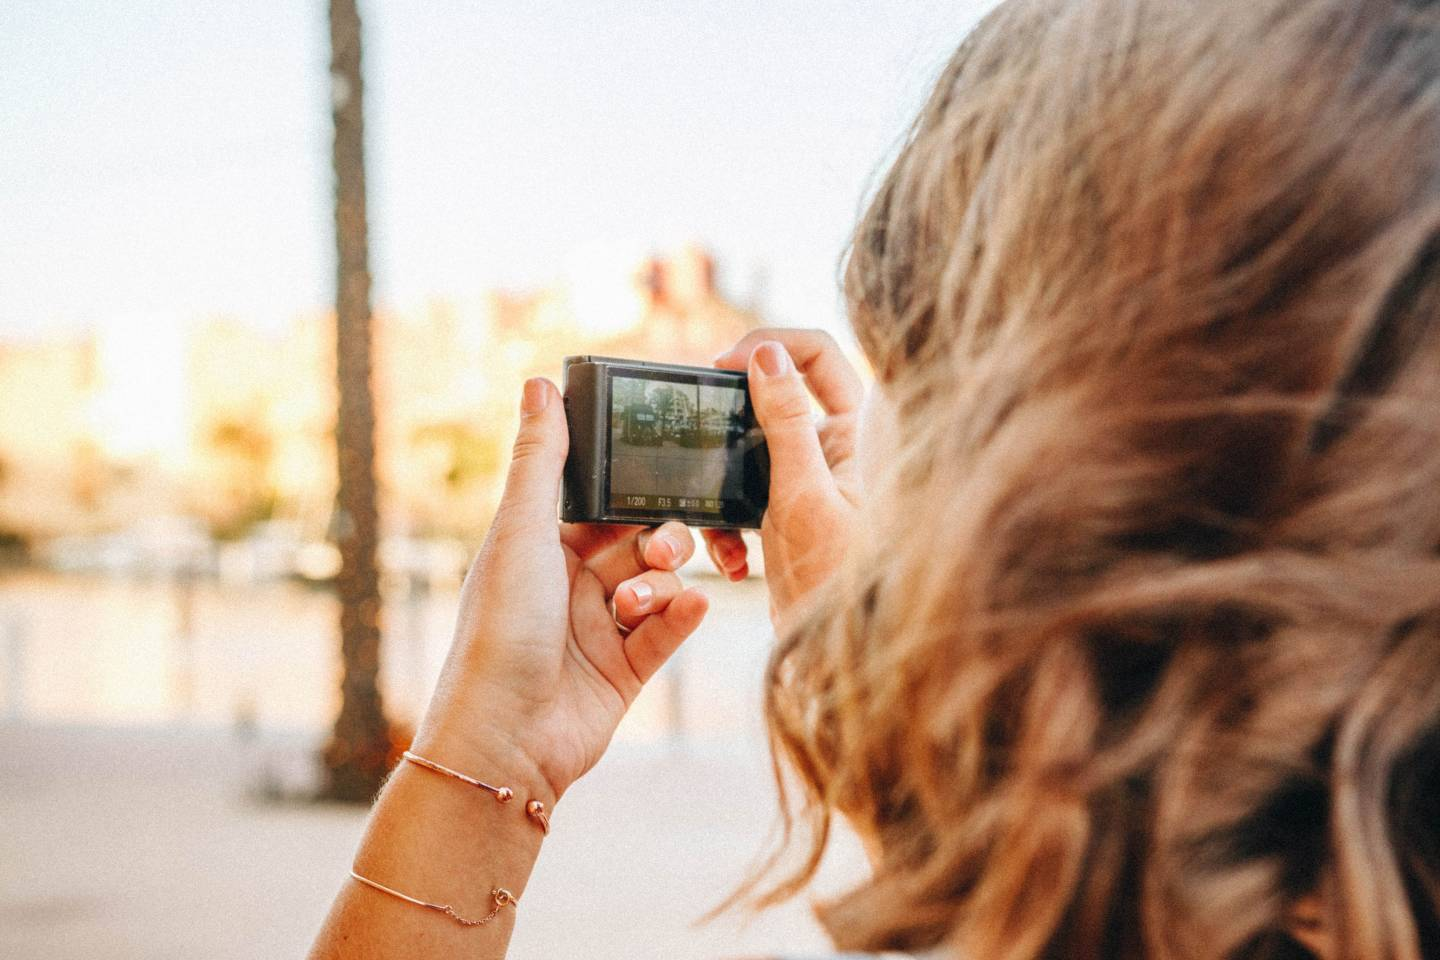 A woman takes a photo with a digital point-and-shoot